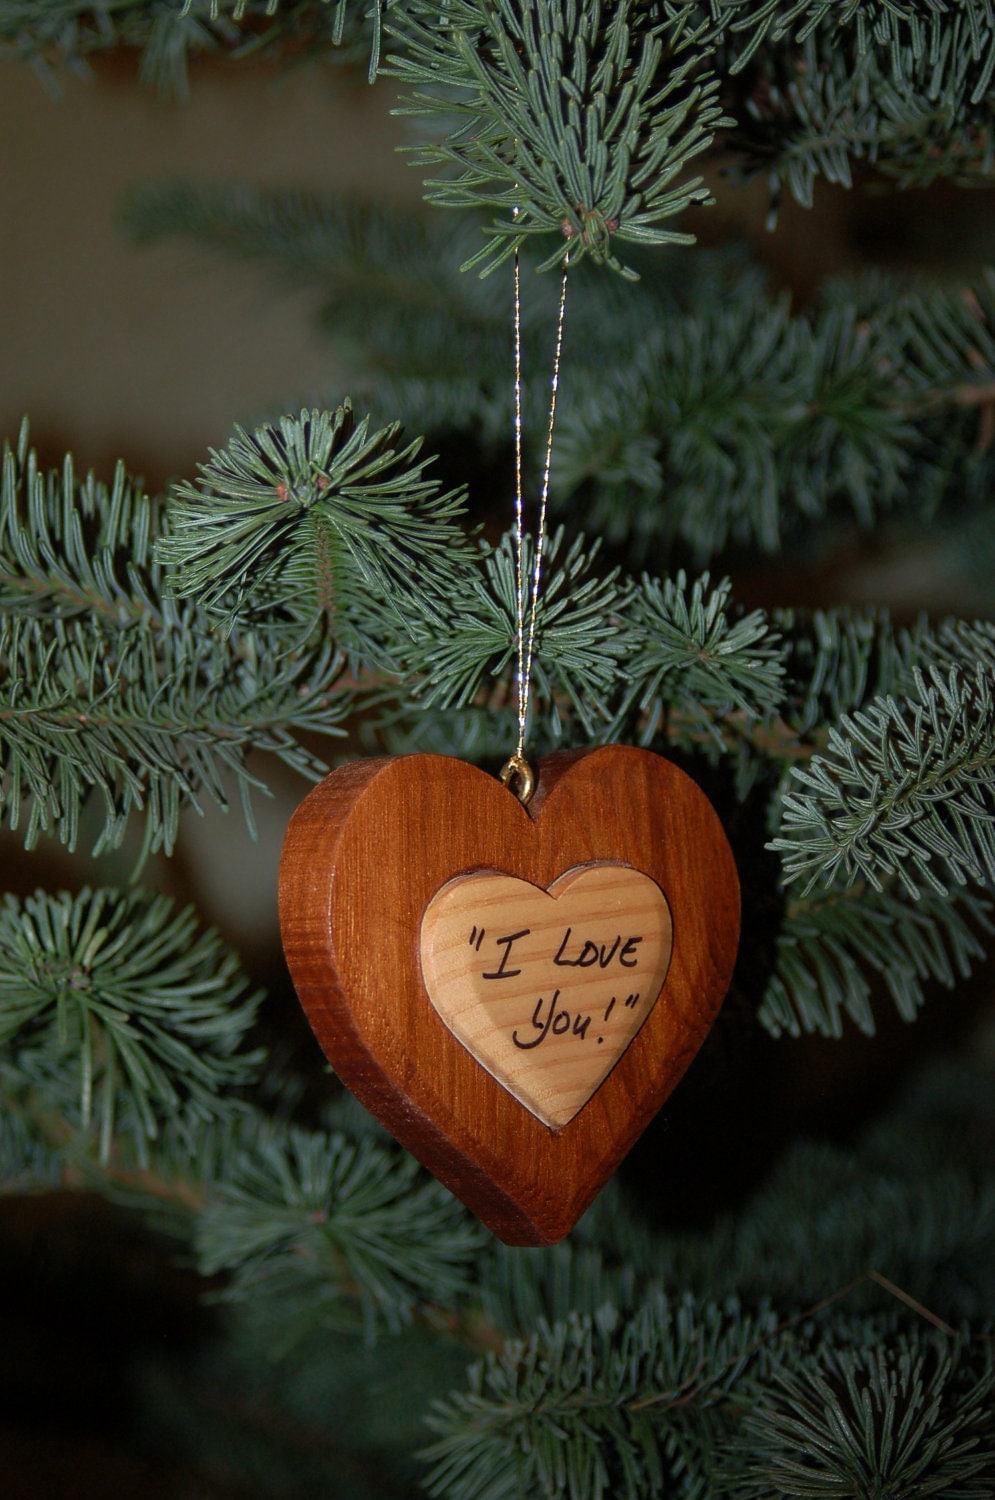 HEART CHRISTMAS ORNAMENT Carving. This wooden heart will be a treasured holiday decor, and remind them that you are thinking of them.